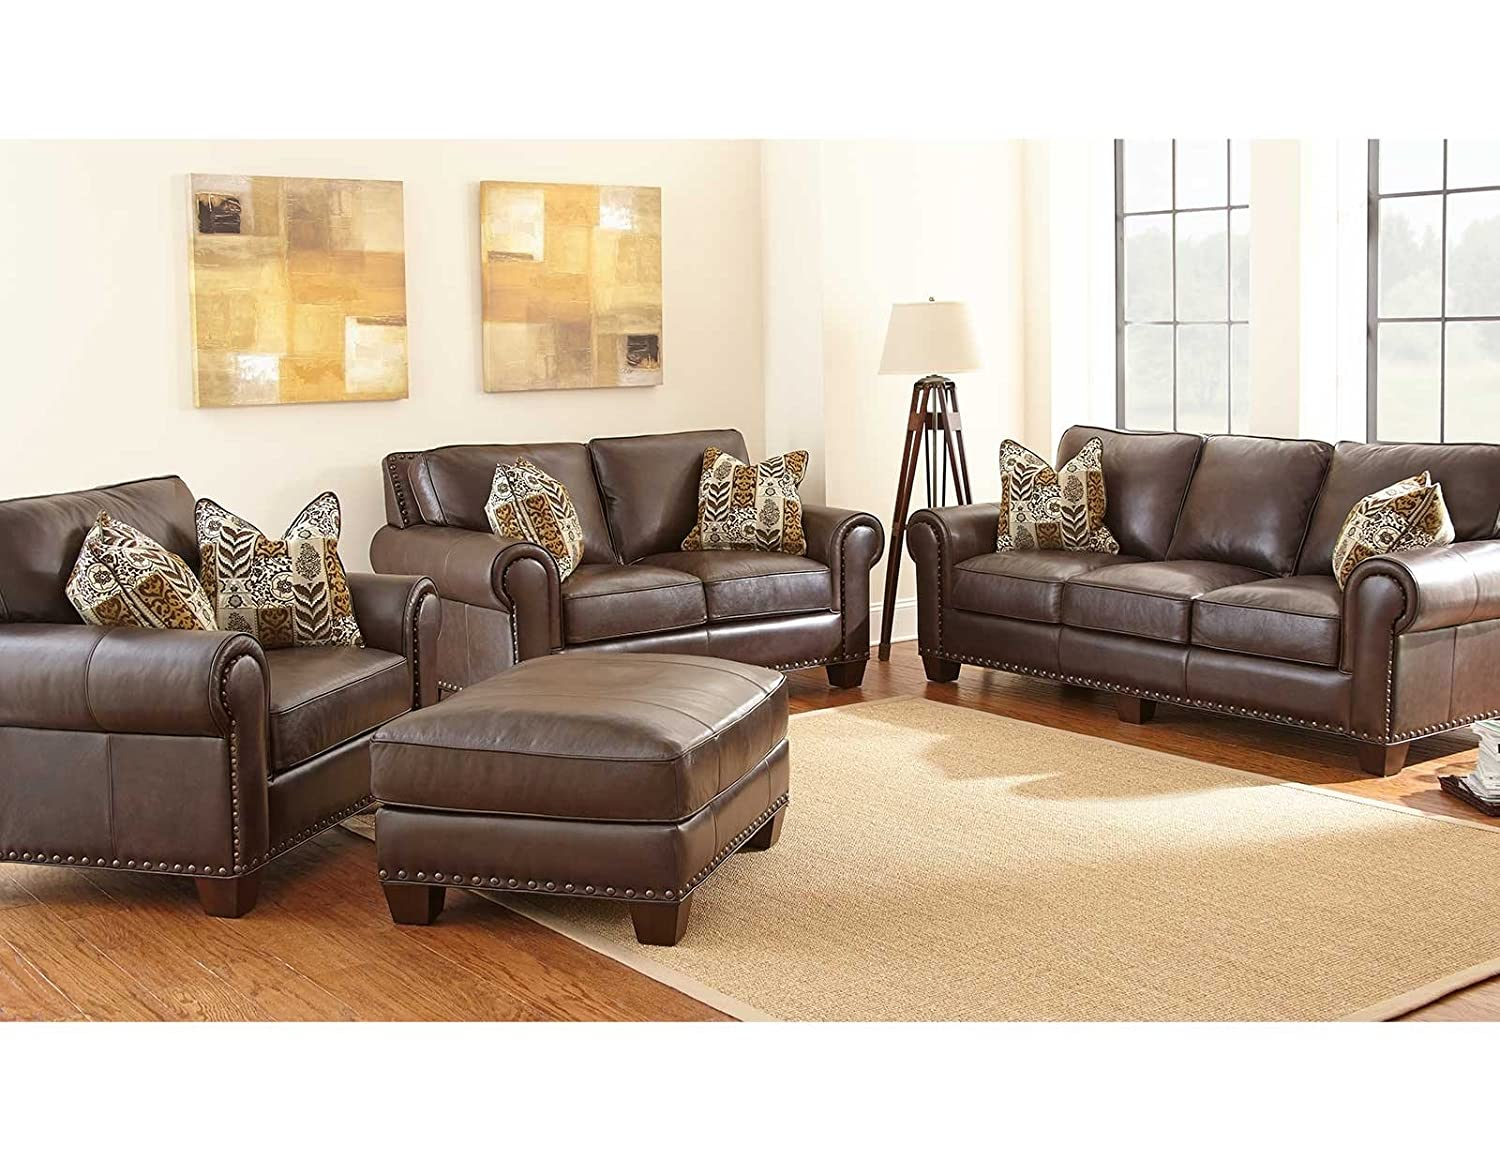 Steve Silver Company Escher Sofa with 2 Accent Pillows